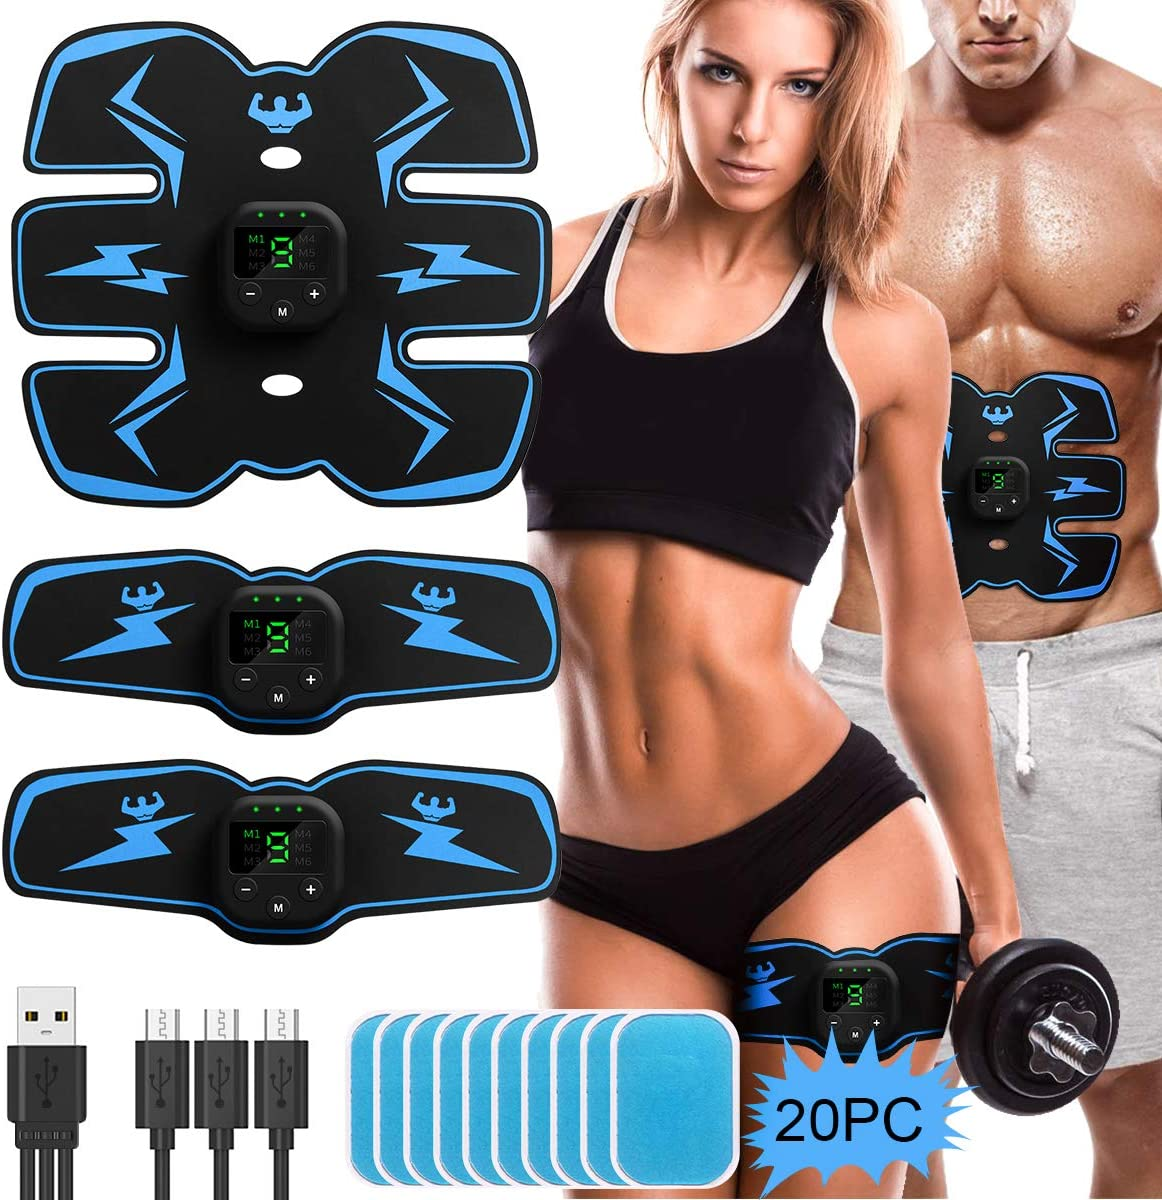 ABS Stimulator Abdominal Muscle Toner, EMS Abdomen Muscle Trainer Toning Workout Rechargeable for Men Women, Free 20pcs Gel Pads